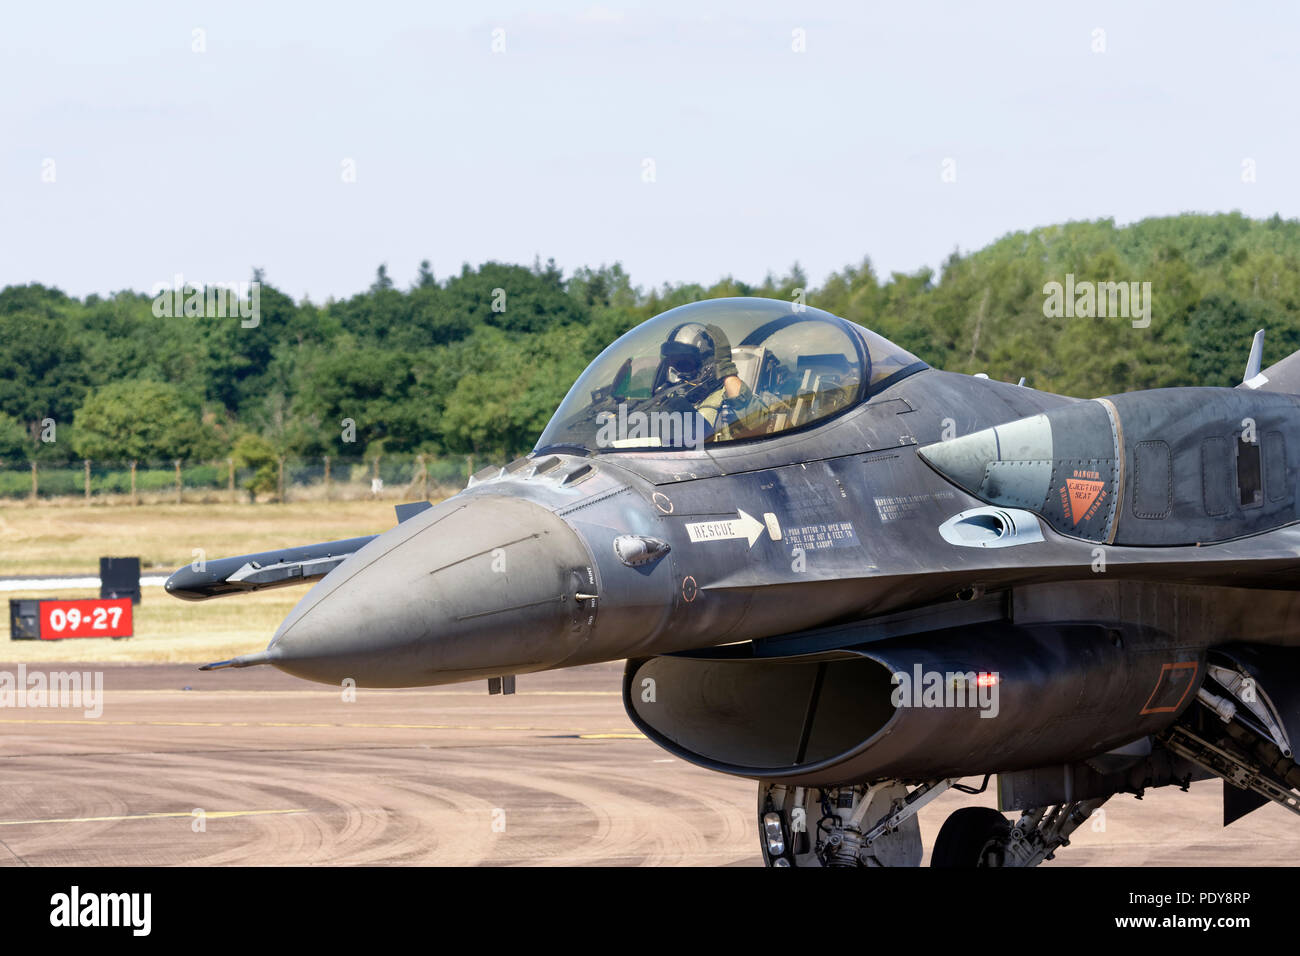 A Block 52 Lockheed Martin F16 Fighter jet from the Hellenic Air Force arrives at RAF Fairford in the United Kingdom for the RIAT - Stock Image